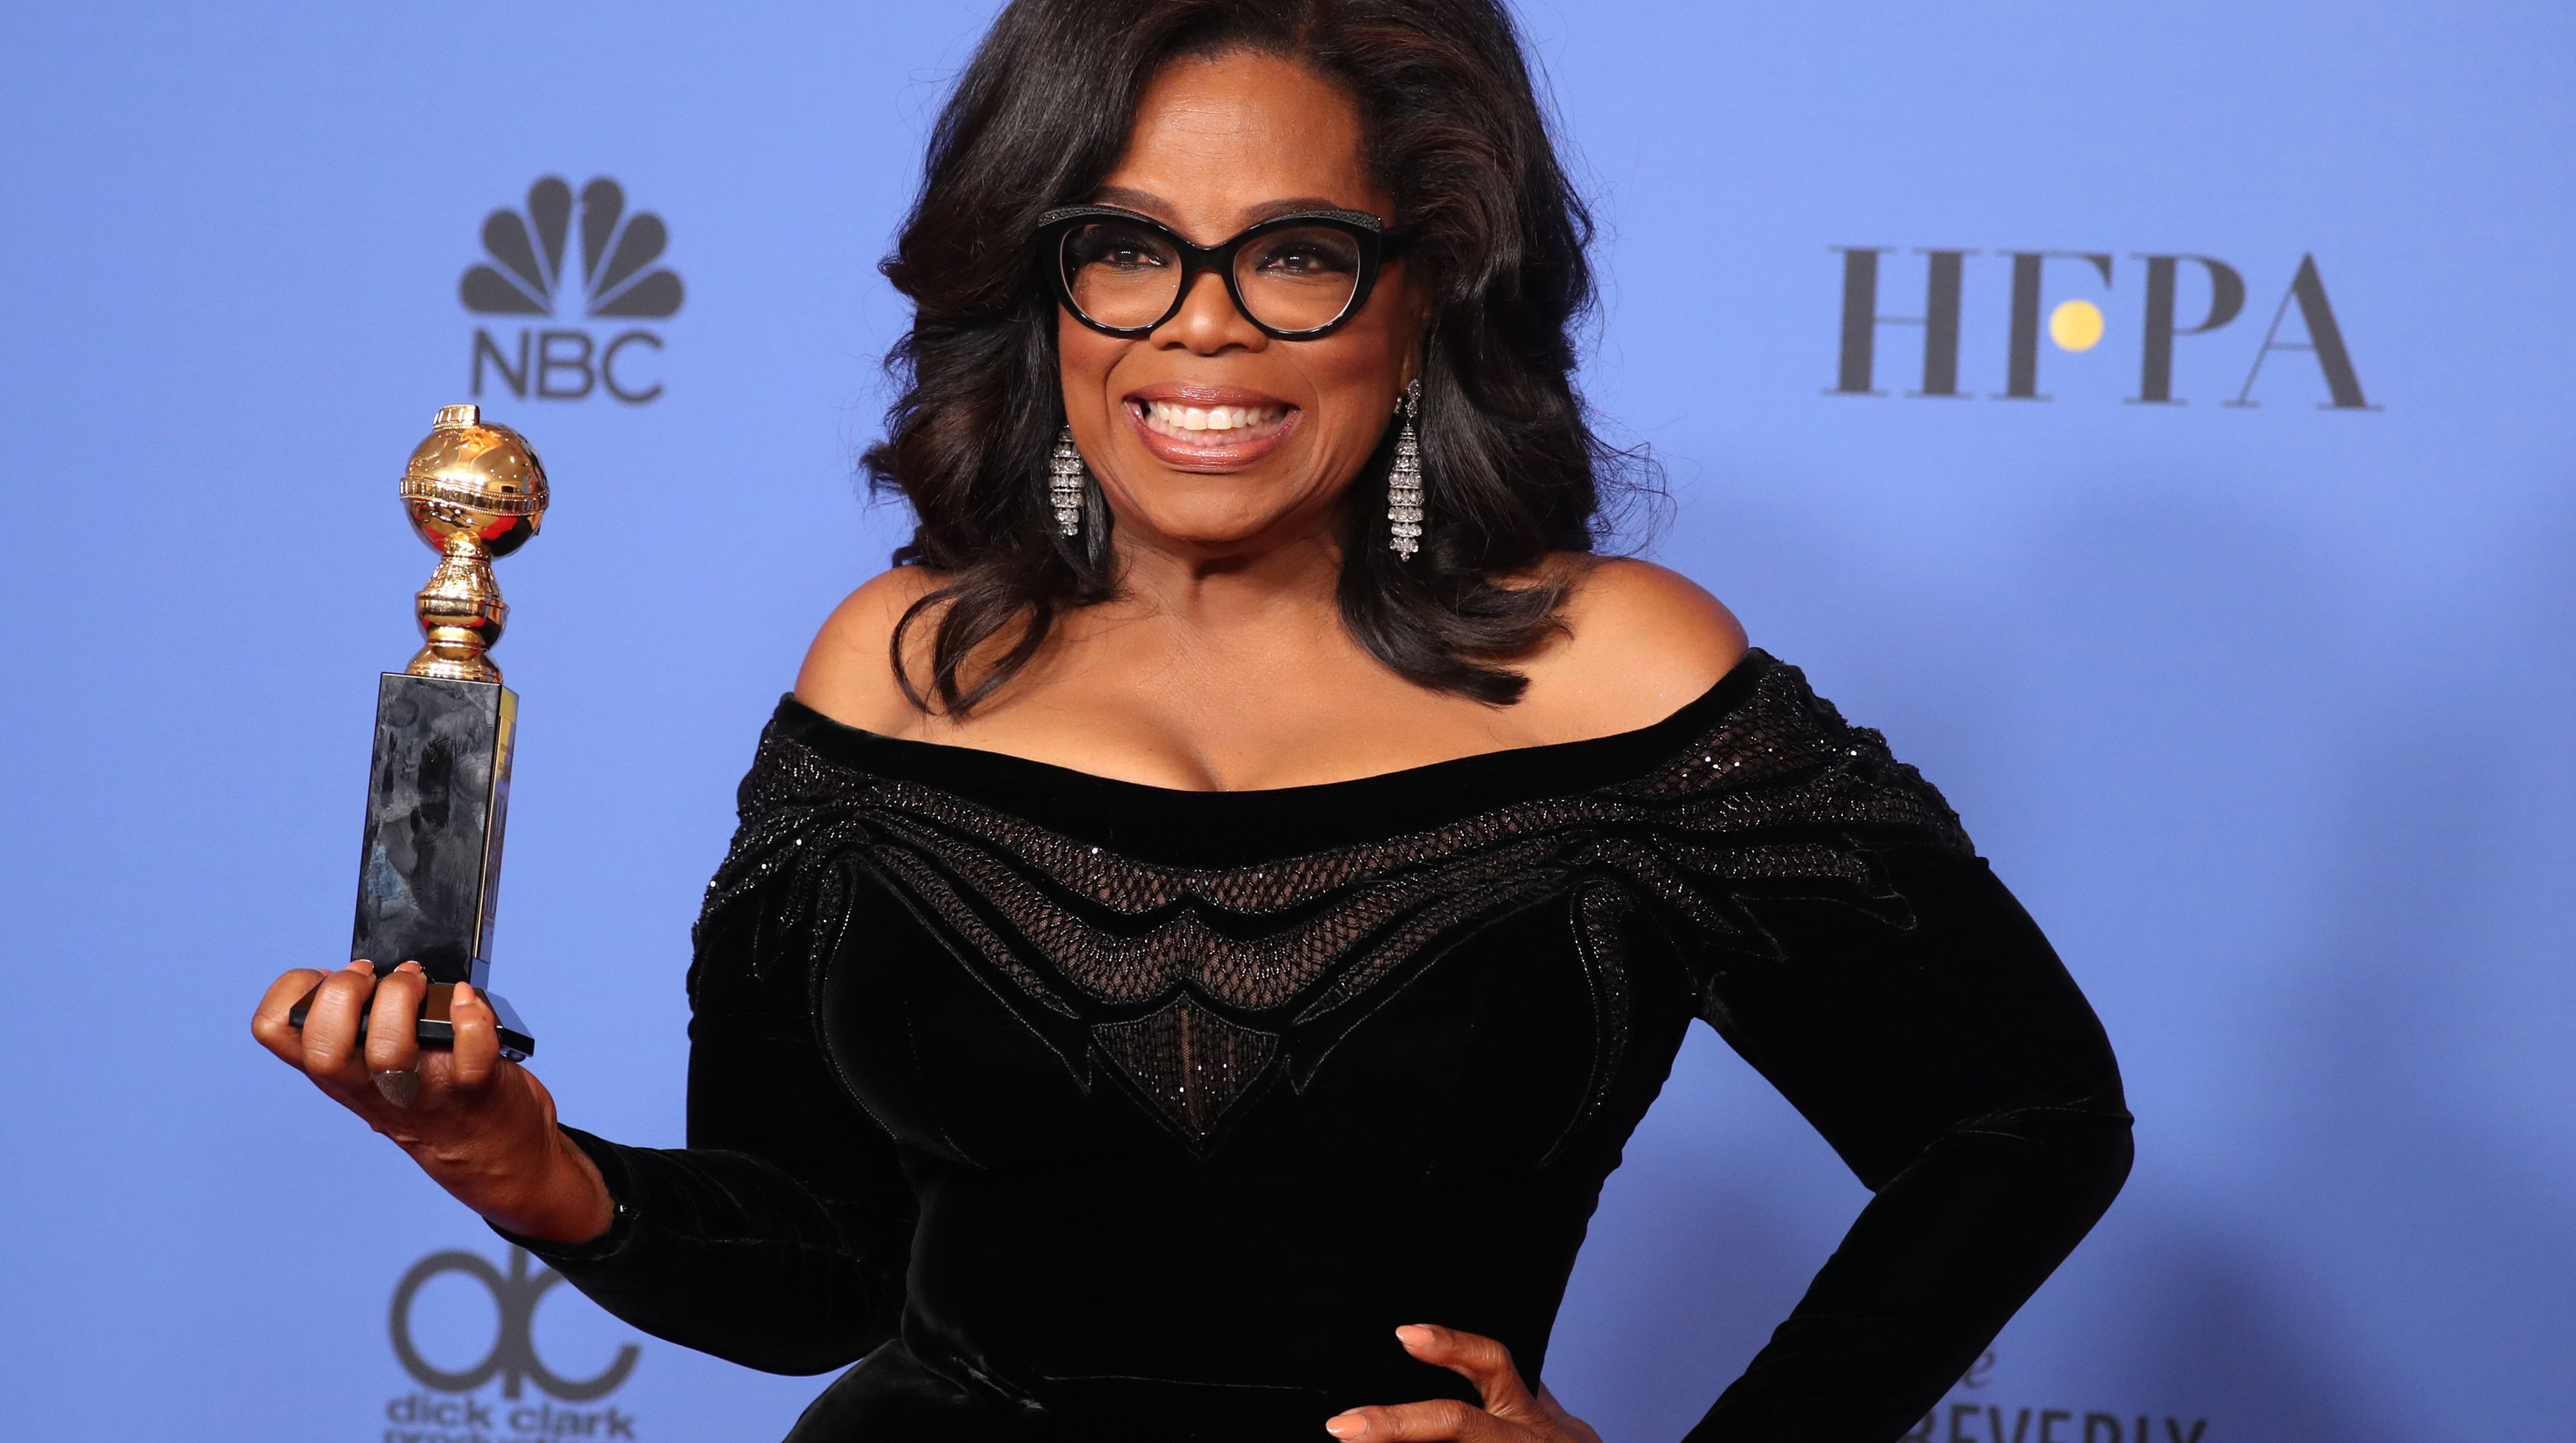 Monday's Morning Email: Oprah's Rousing Golden Globes Speech Sparks Chorus Of Calls For Oprah 2020